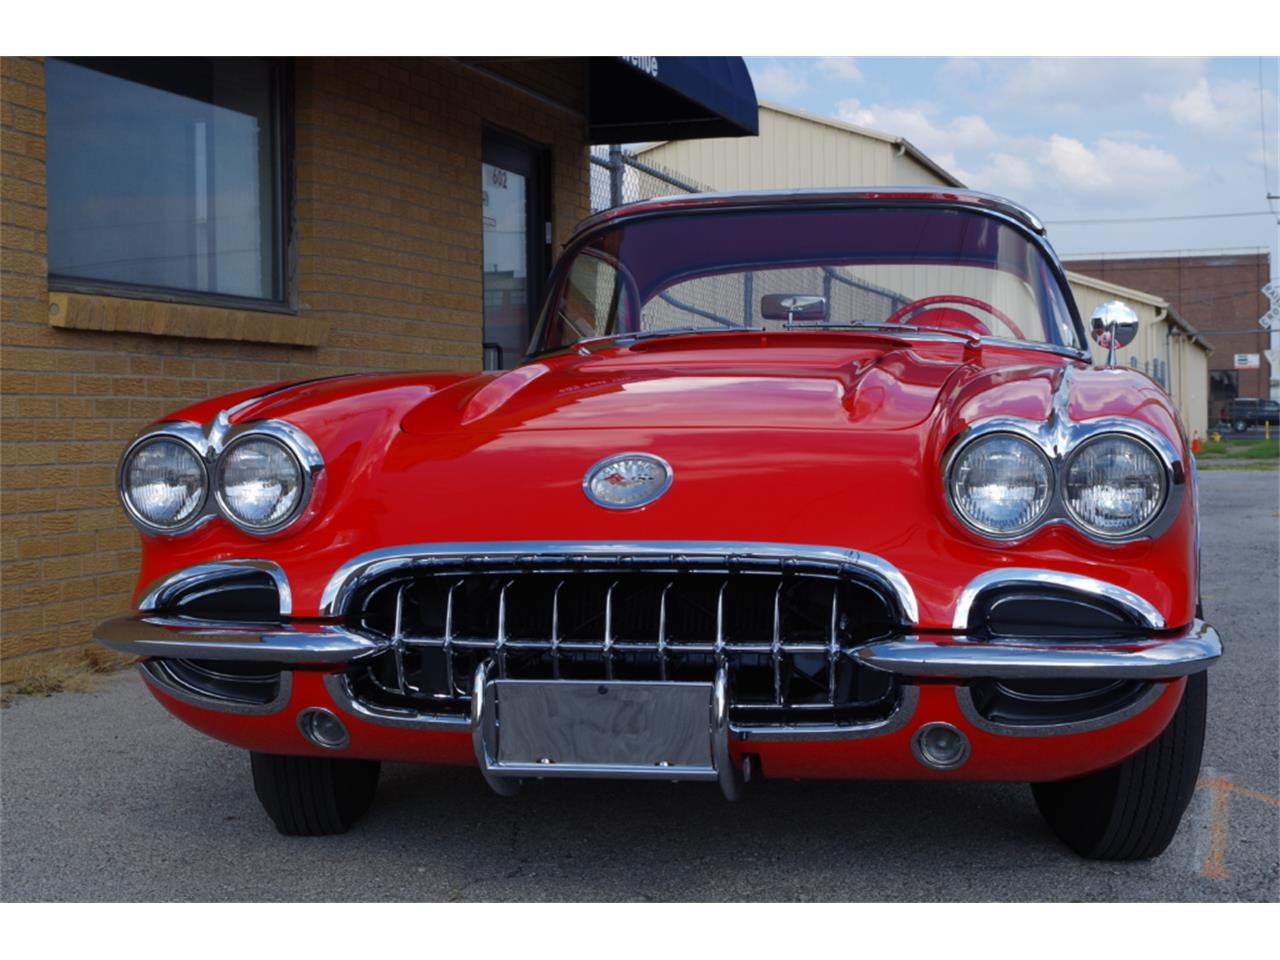 Large Picture of 1958 Corvette located in Missouri - $139,900.00 Offered by Vintage Vettes, LLC - R23F